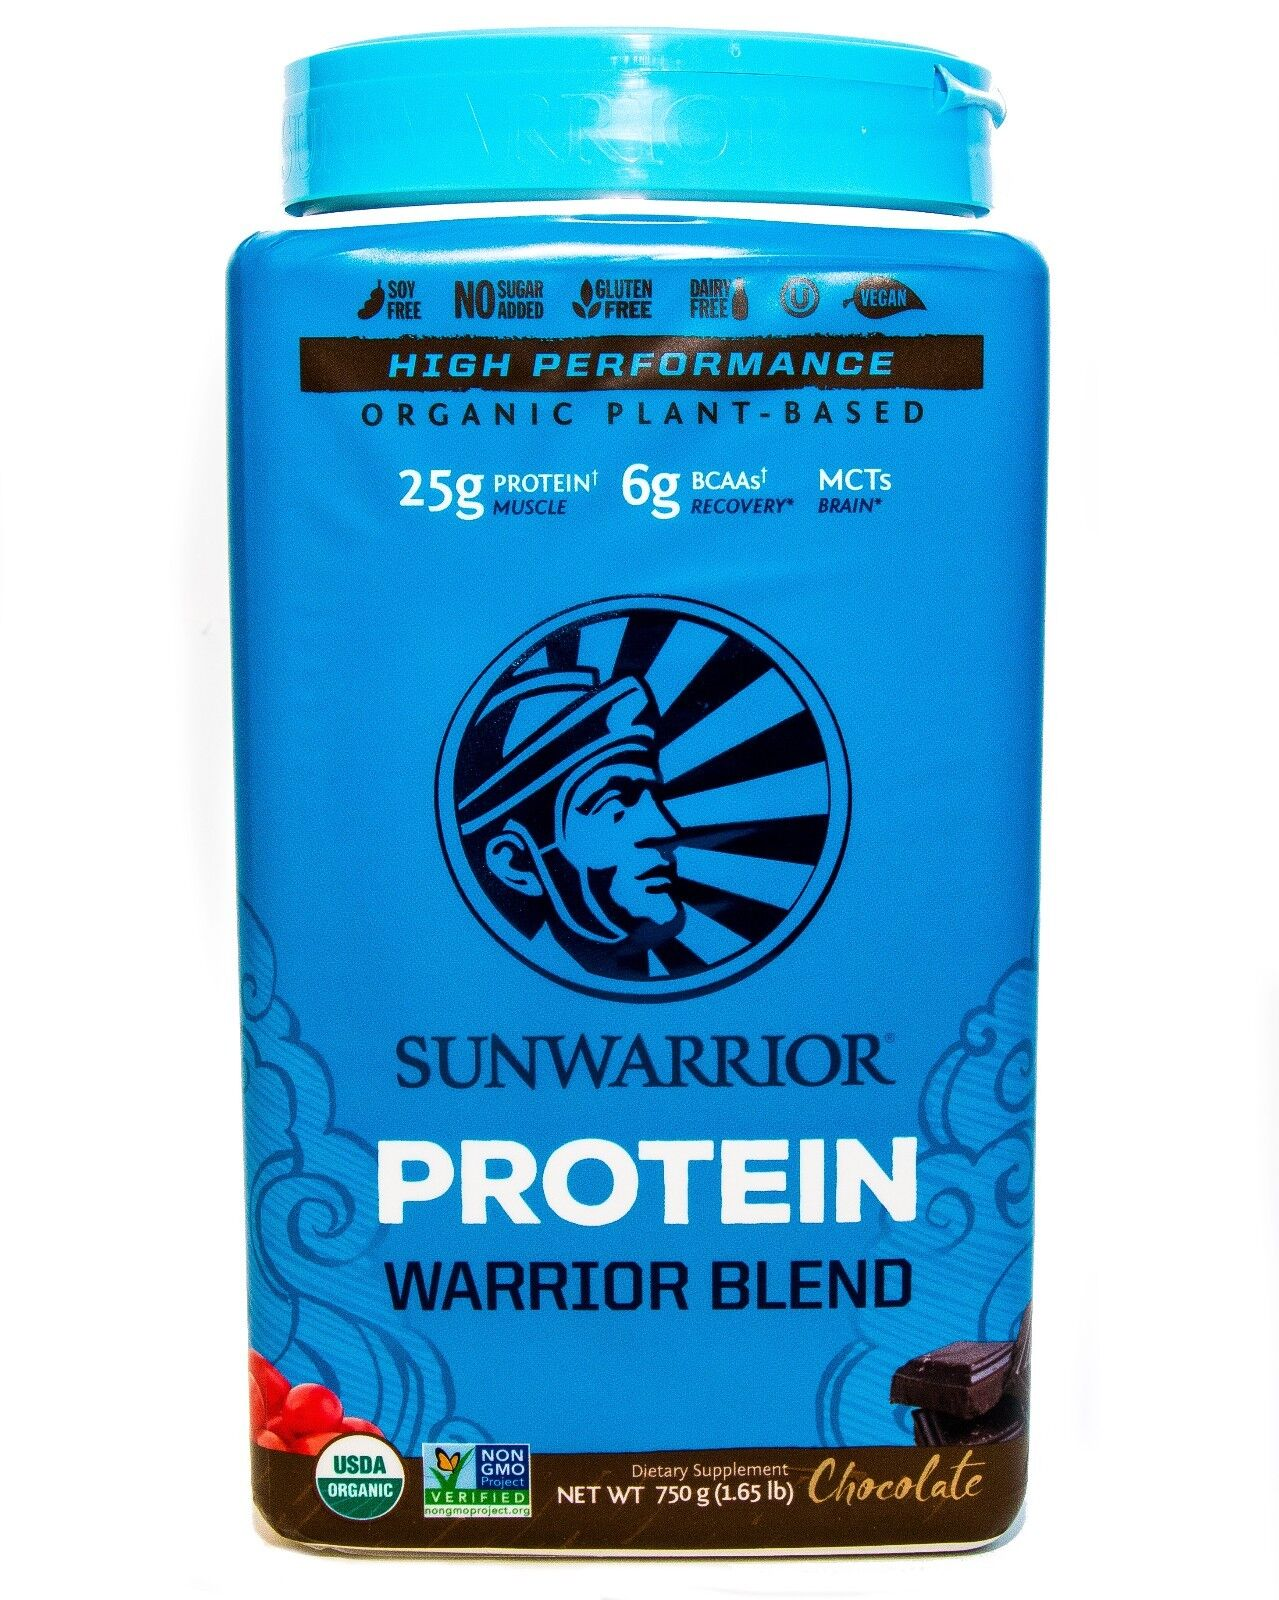 SunWarrior Warrior Blend Plant Based Organic Protein, 20 - 30 Servings CHOCOLATE